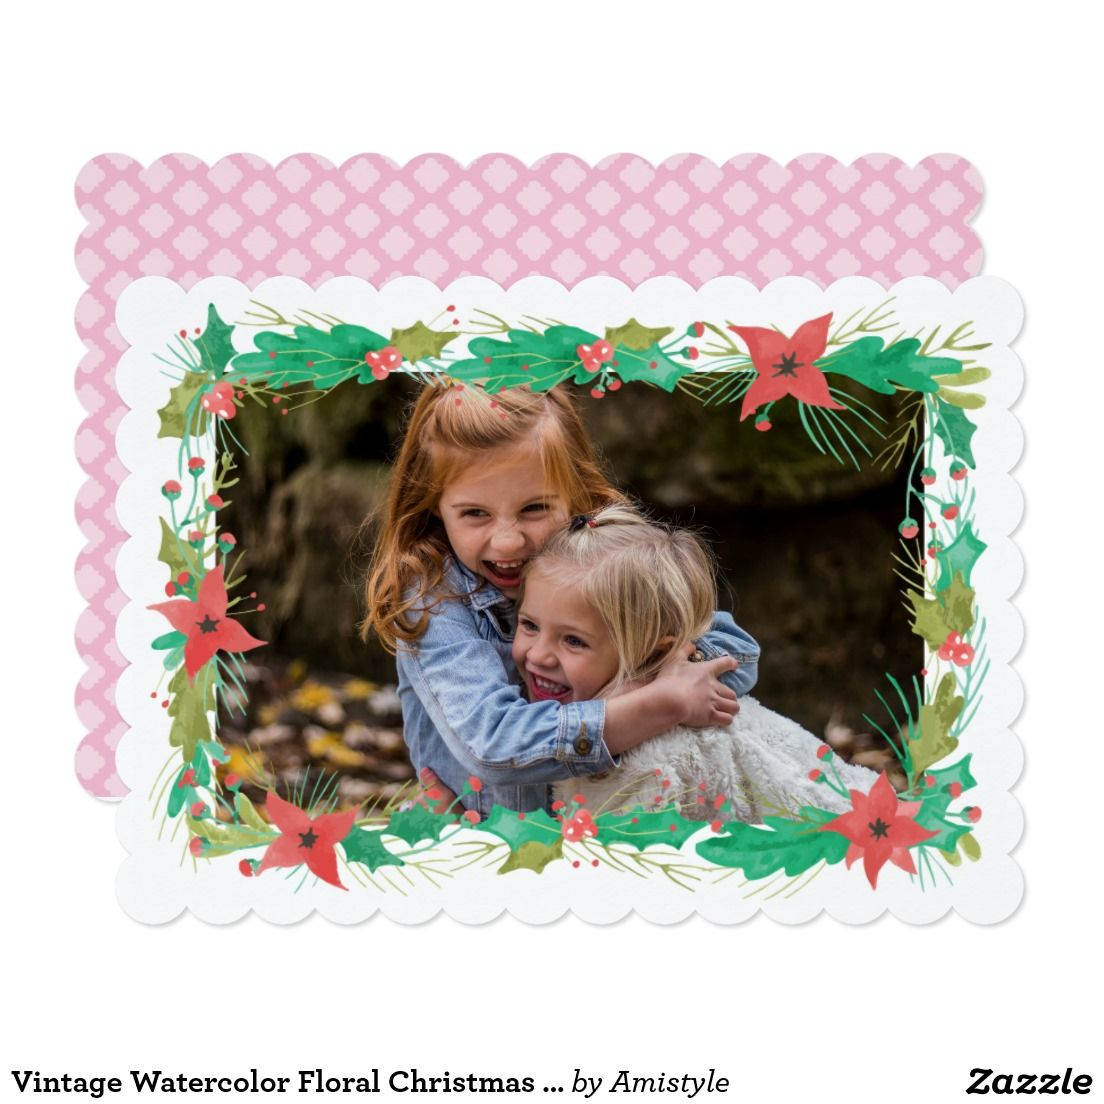 Vintage Watercolor Floral Christmas Photocard